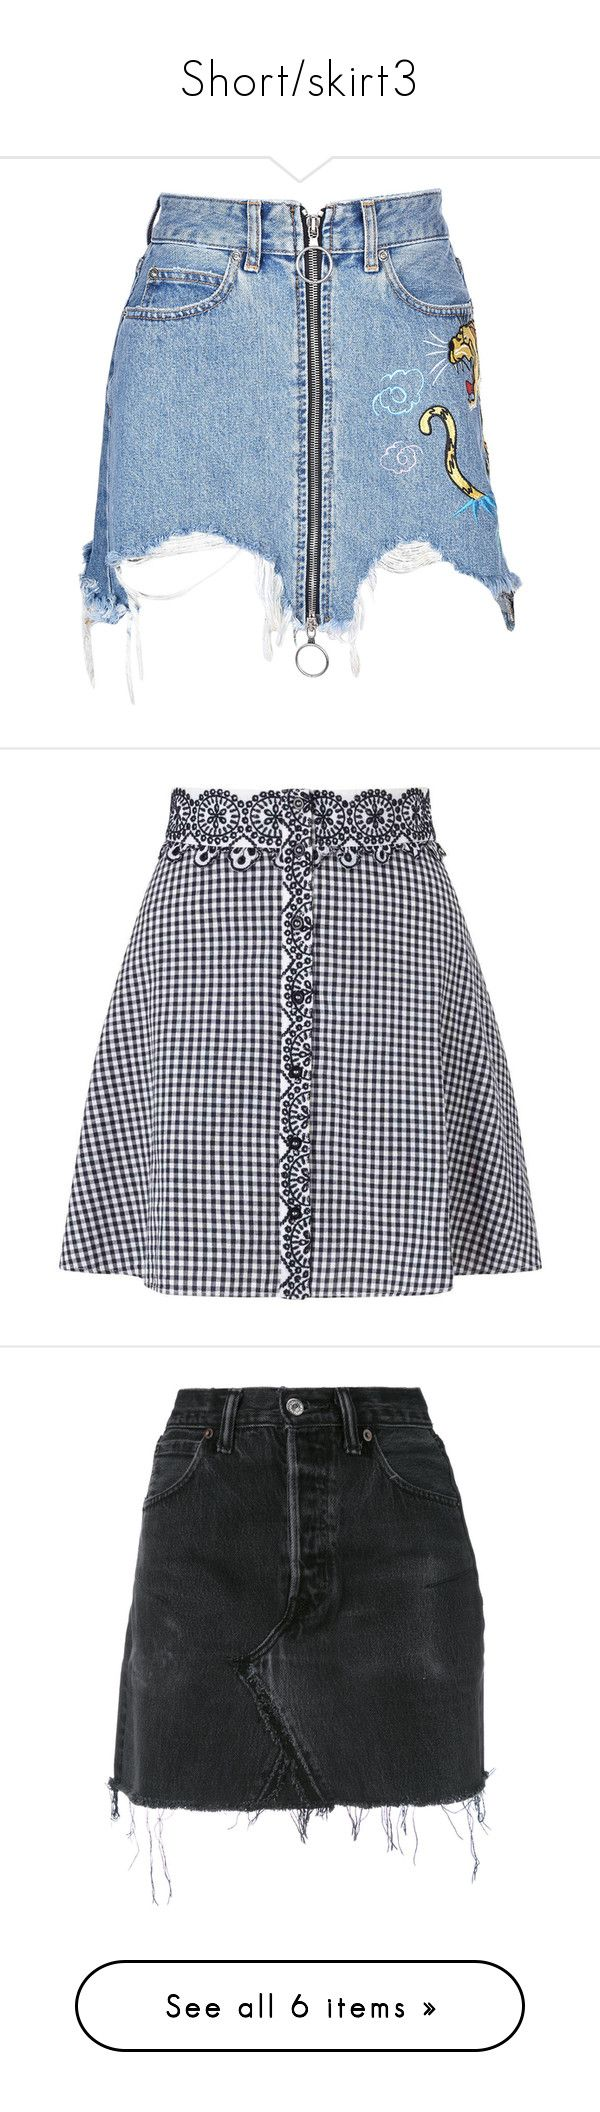 """""""Short/skirt3"""" by starz-official ❤ liked on Polyvore featuring skirts, bottoms, multicolor, womenclothingskirts, ripped skirt, patch skirt, multicolor skirt, multi colored skirt, marcelo burlon and black"""